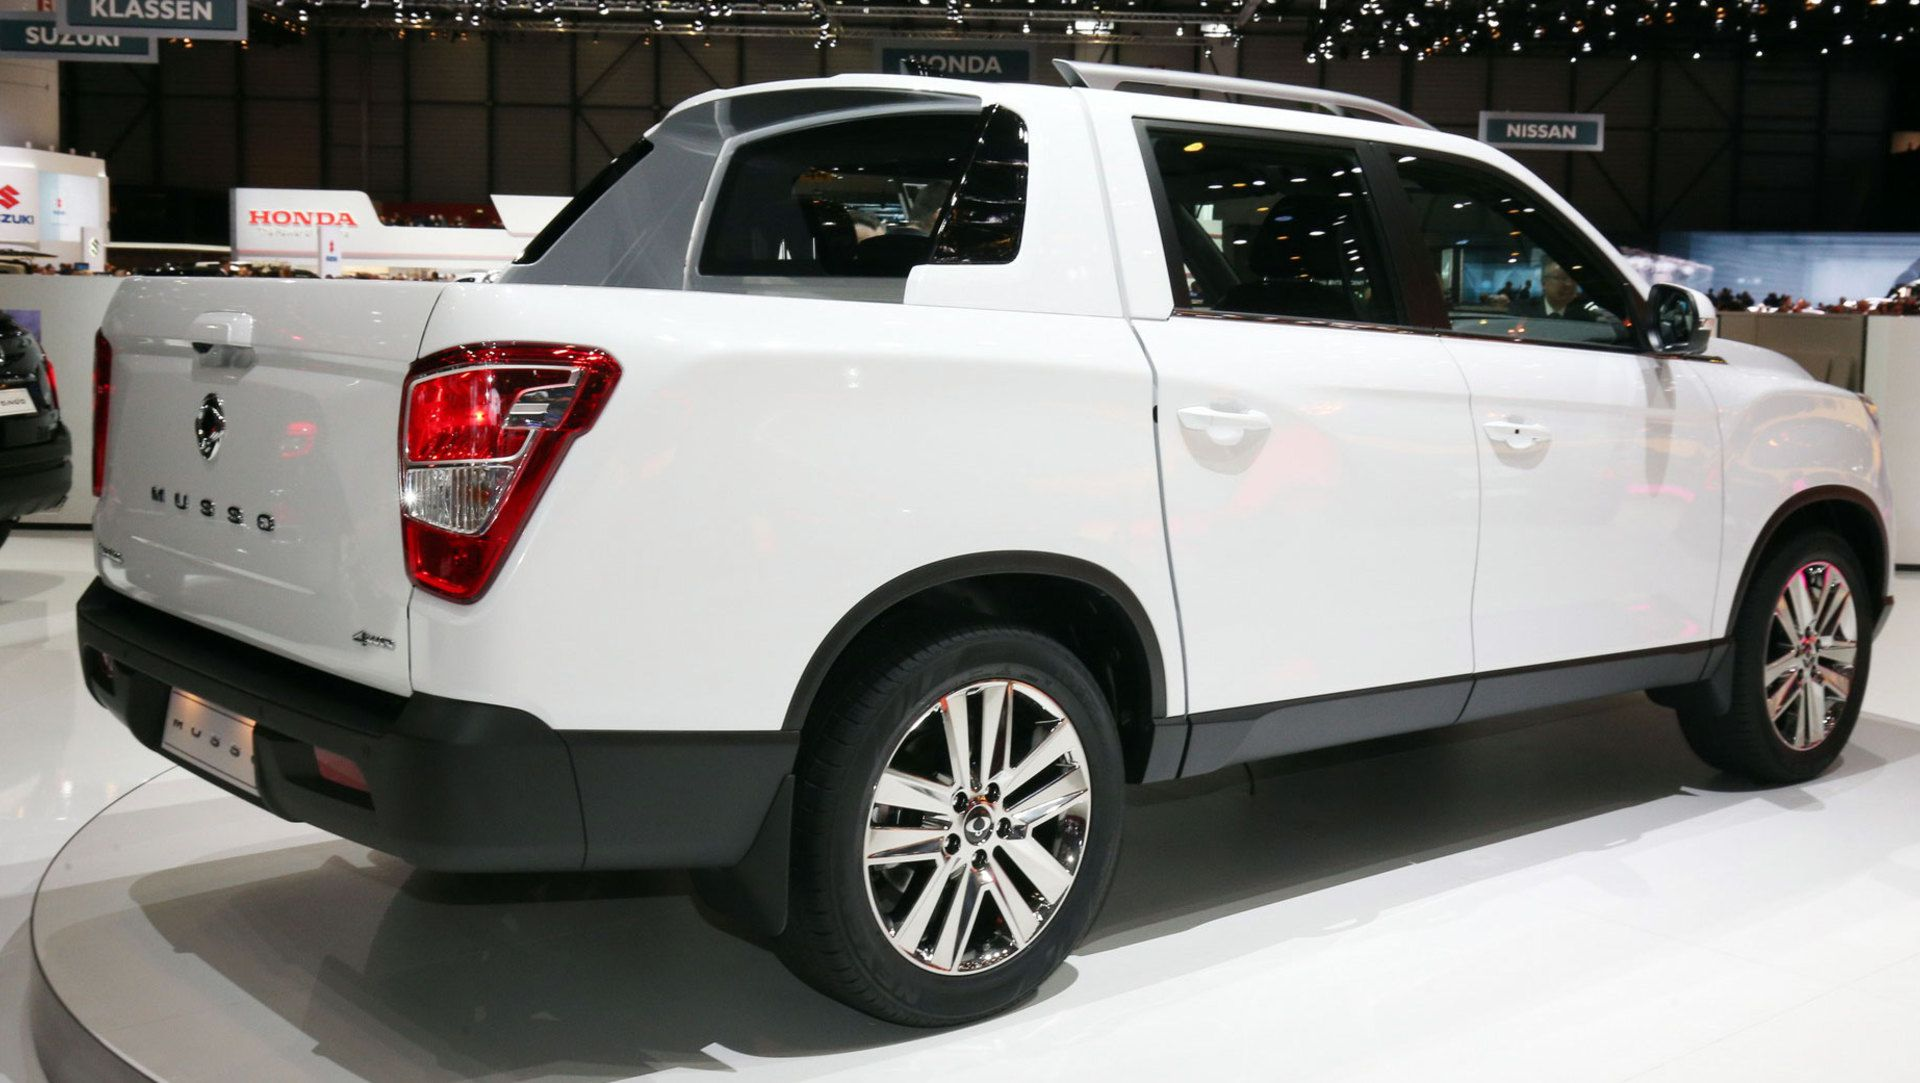 2019 SsangYong Musso Wants To Be Europe's Honda Ridgeline ...